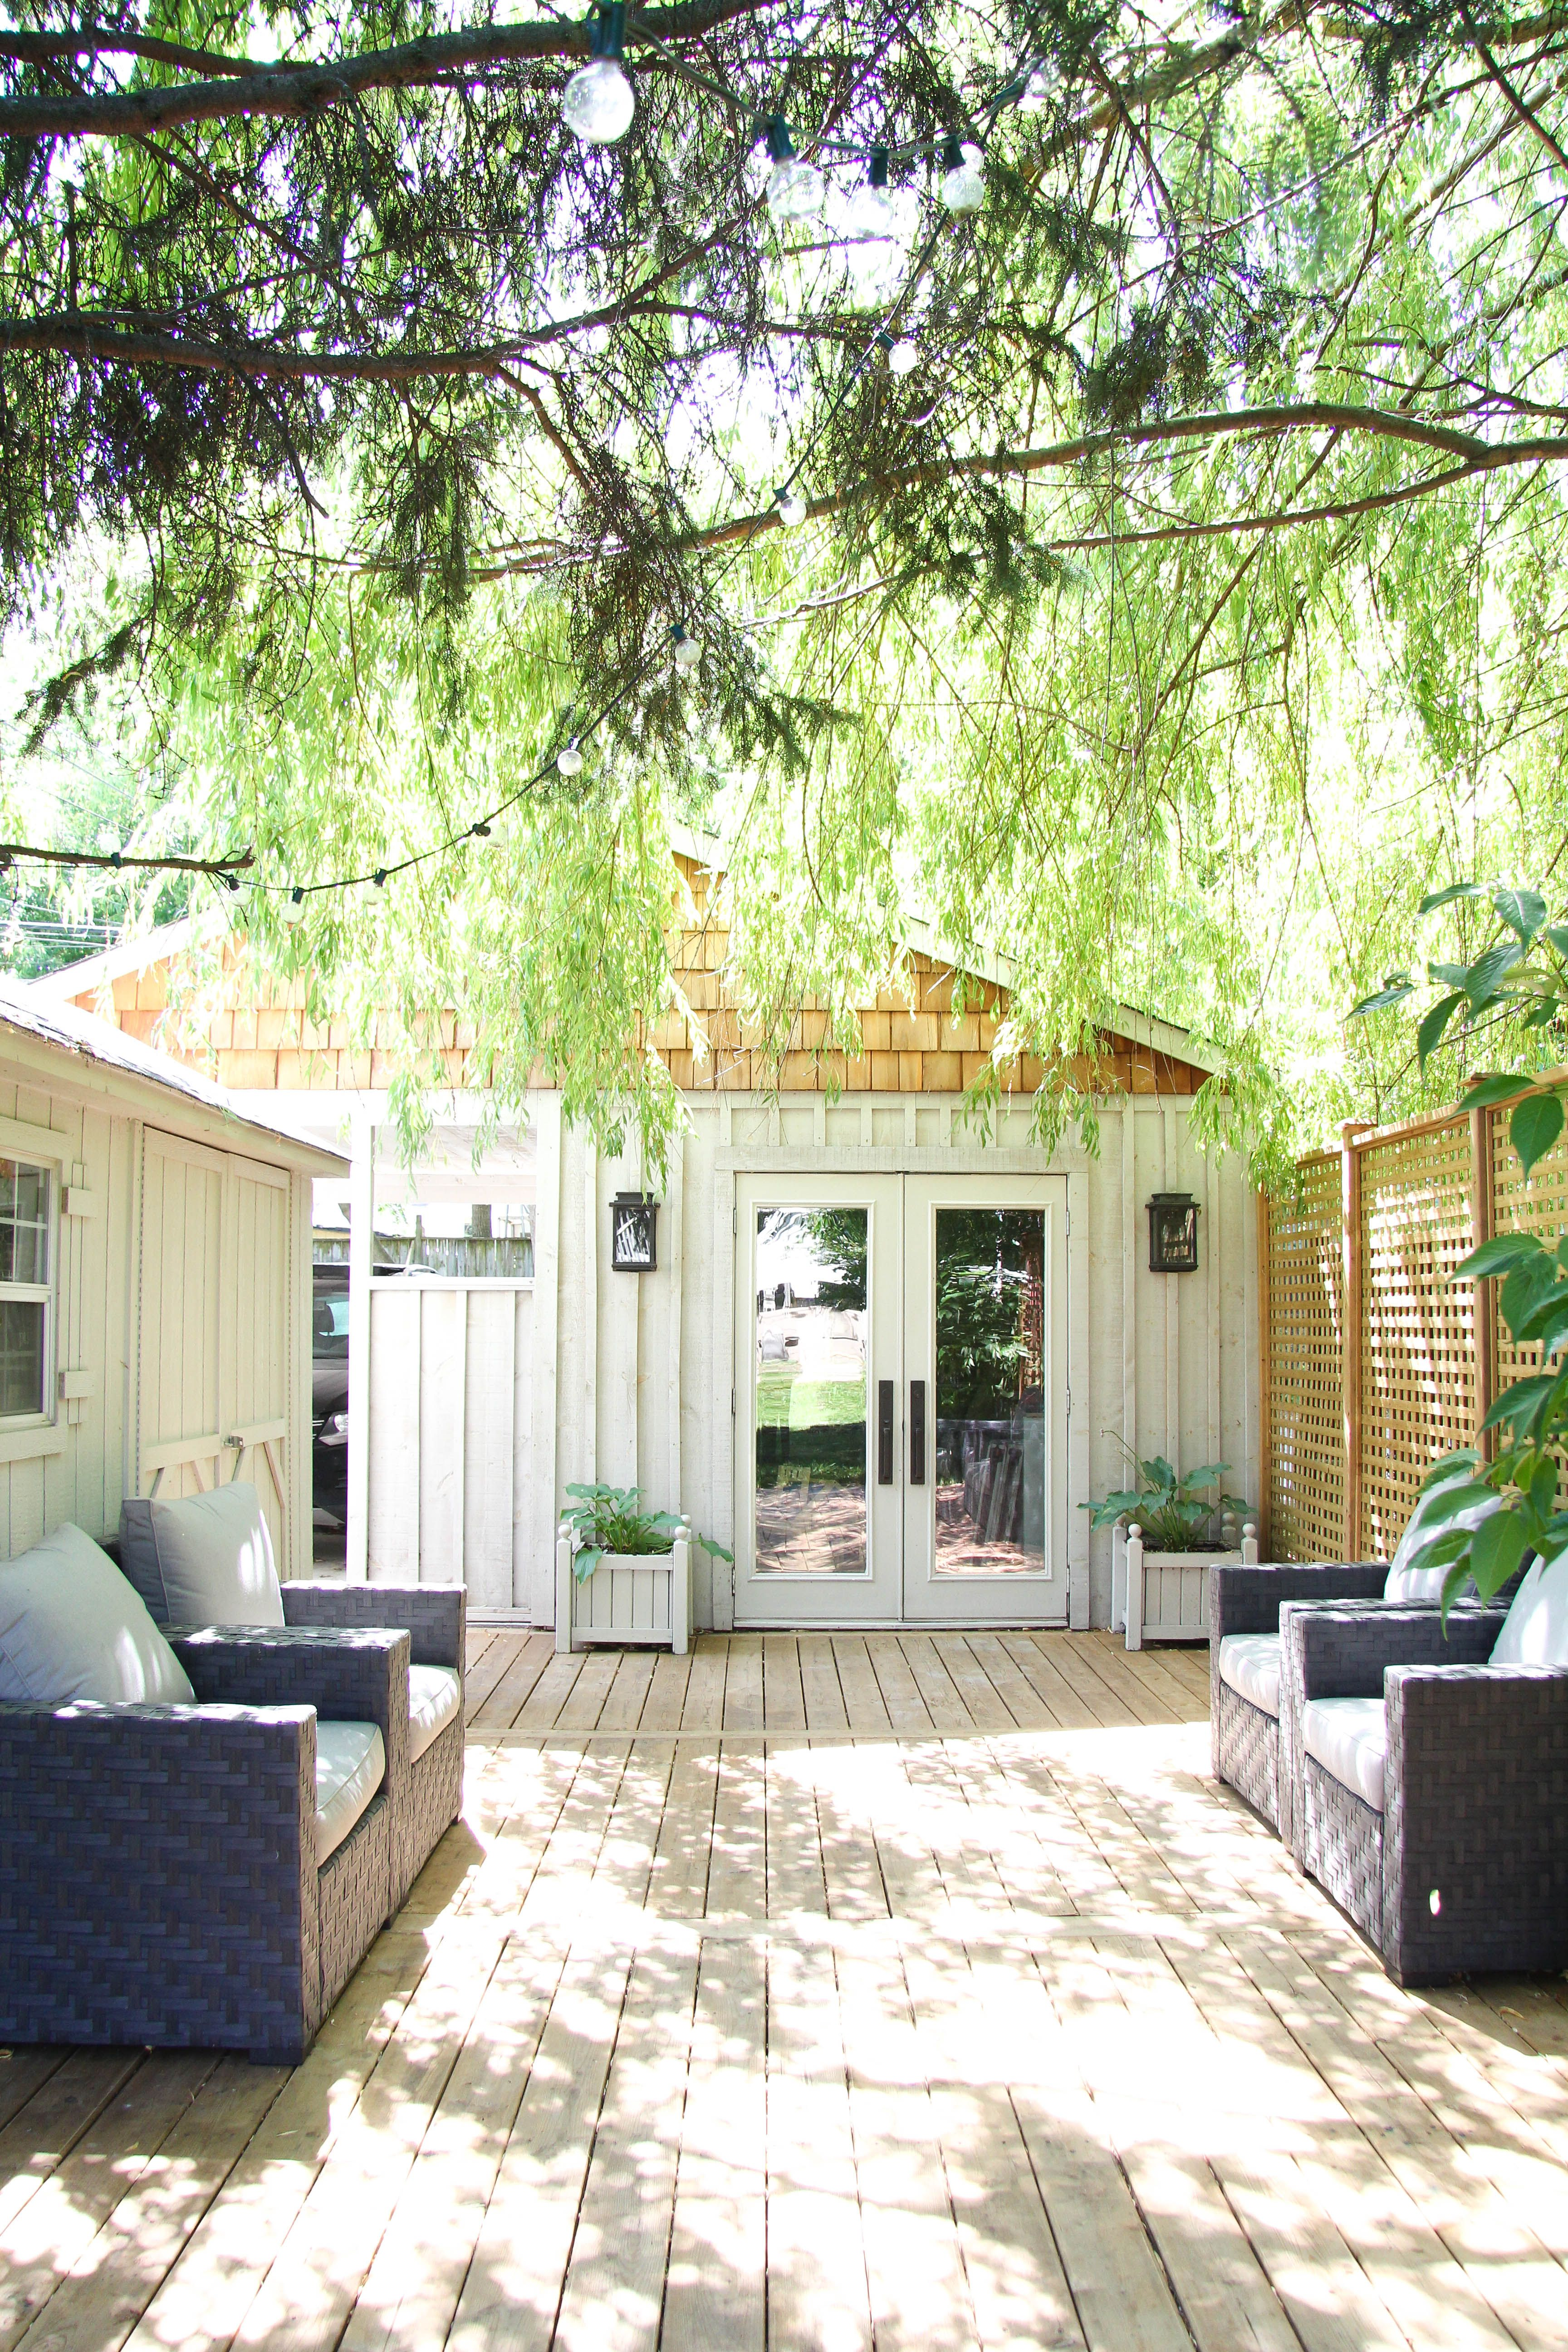 Building A Studio In The Backyard elements of our backyard studio build | house & home | exteriors